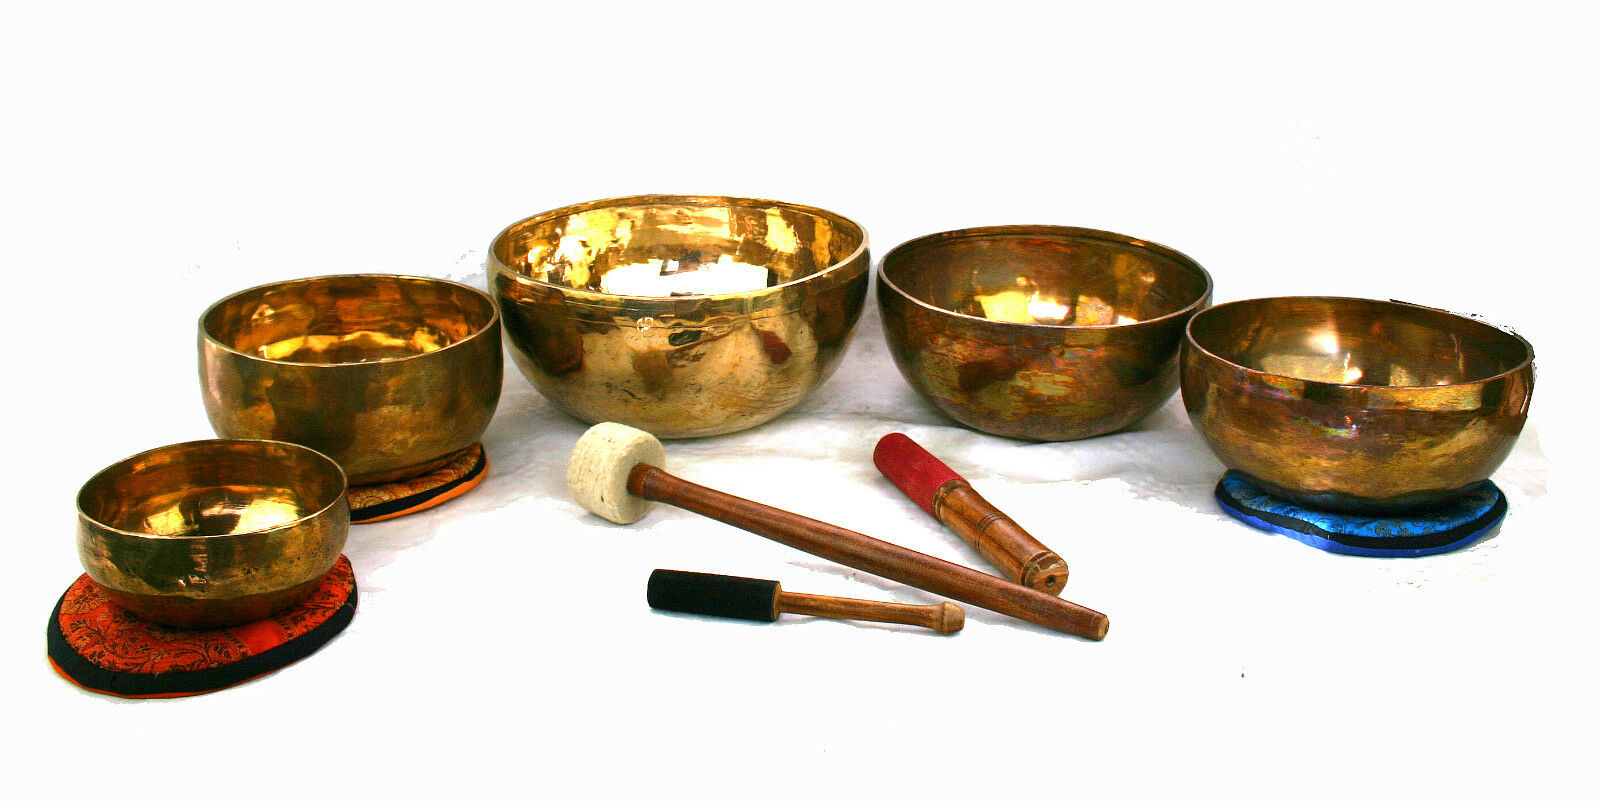 Klangschale Set Klangmassage bol chantant singing bowl 5 St. 5397g Hörprobe S403